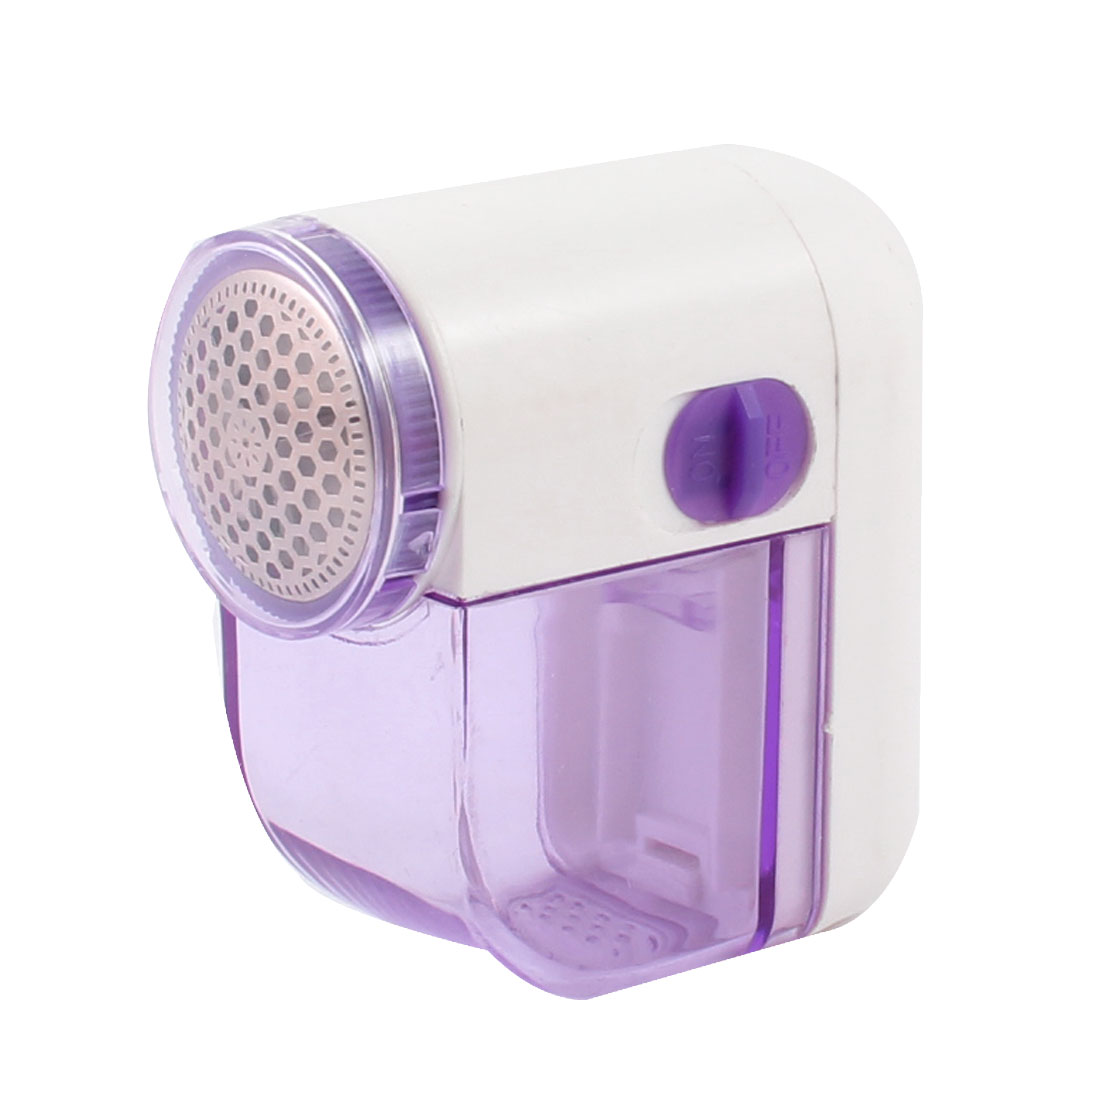 Home Purple White Plastic Fuzz Fabric Lint Remover Sweater Clothes Shaver